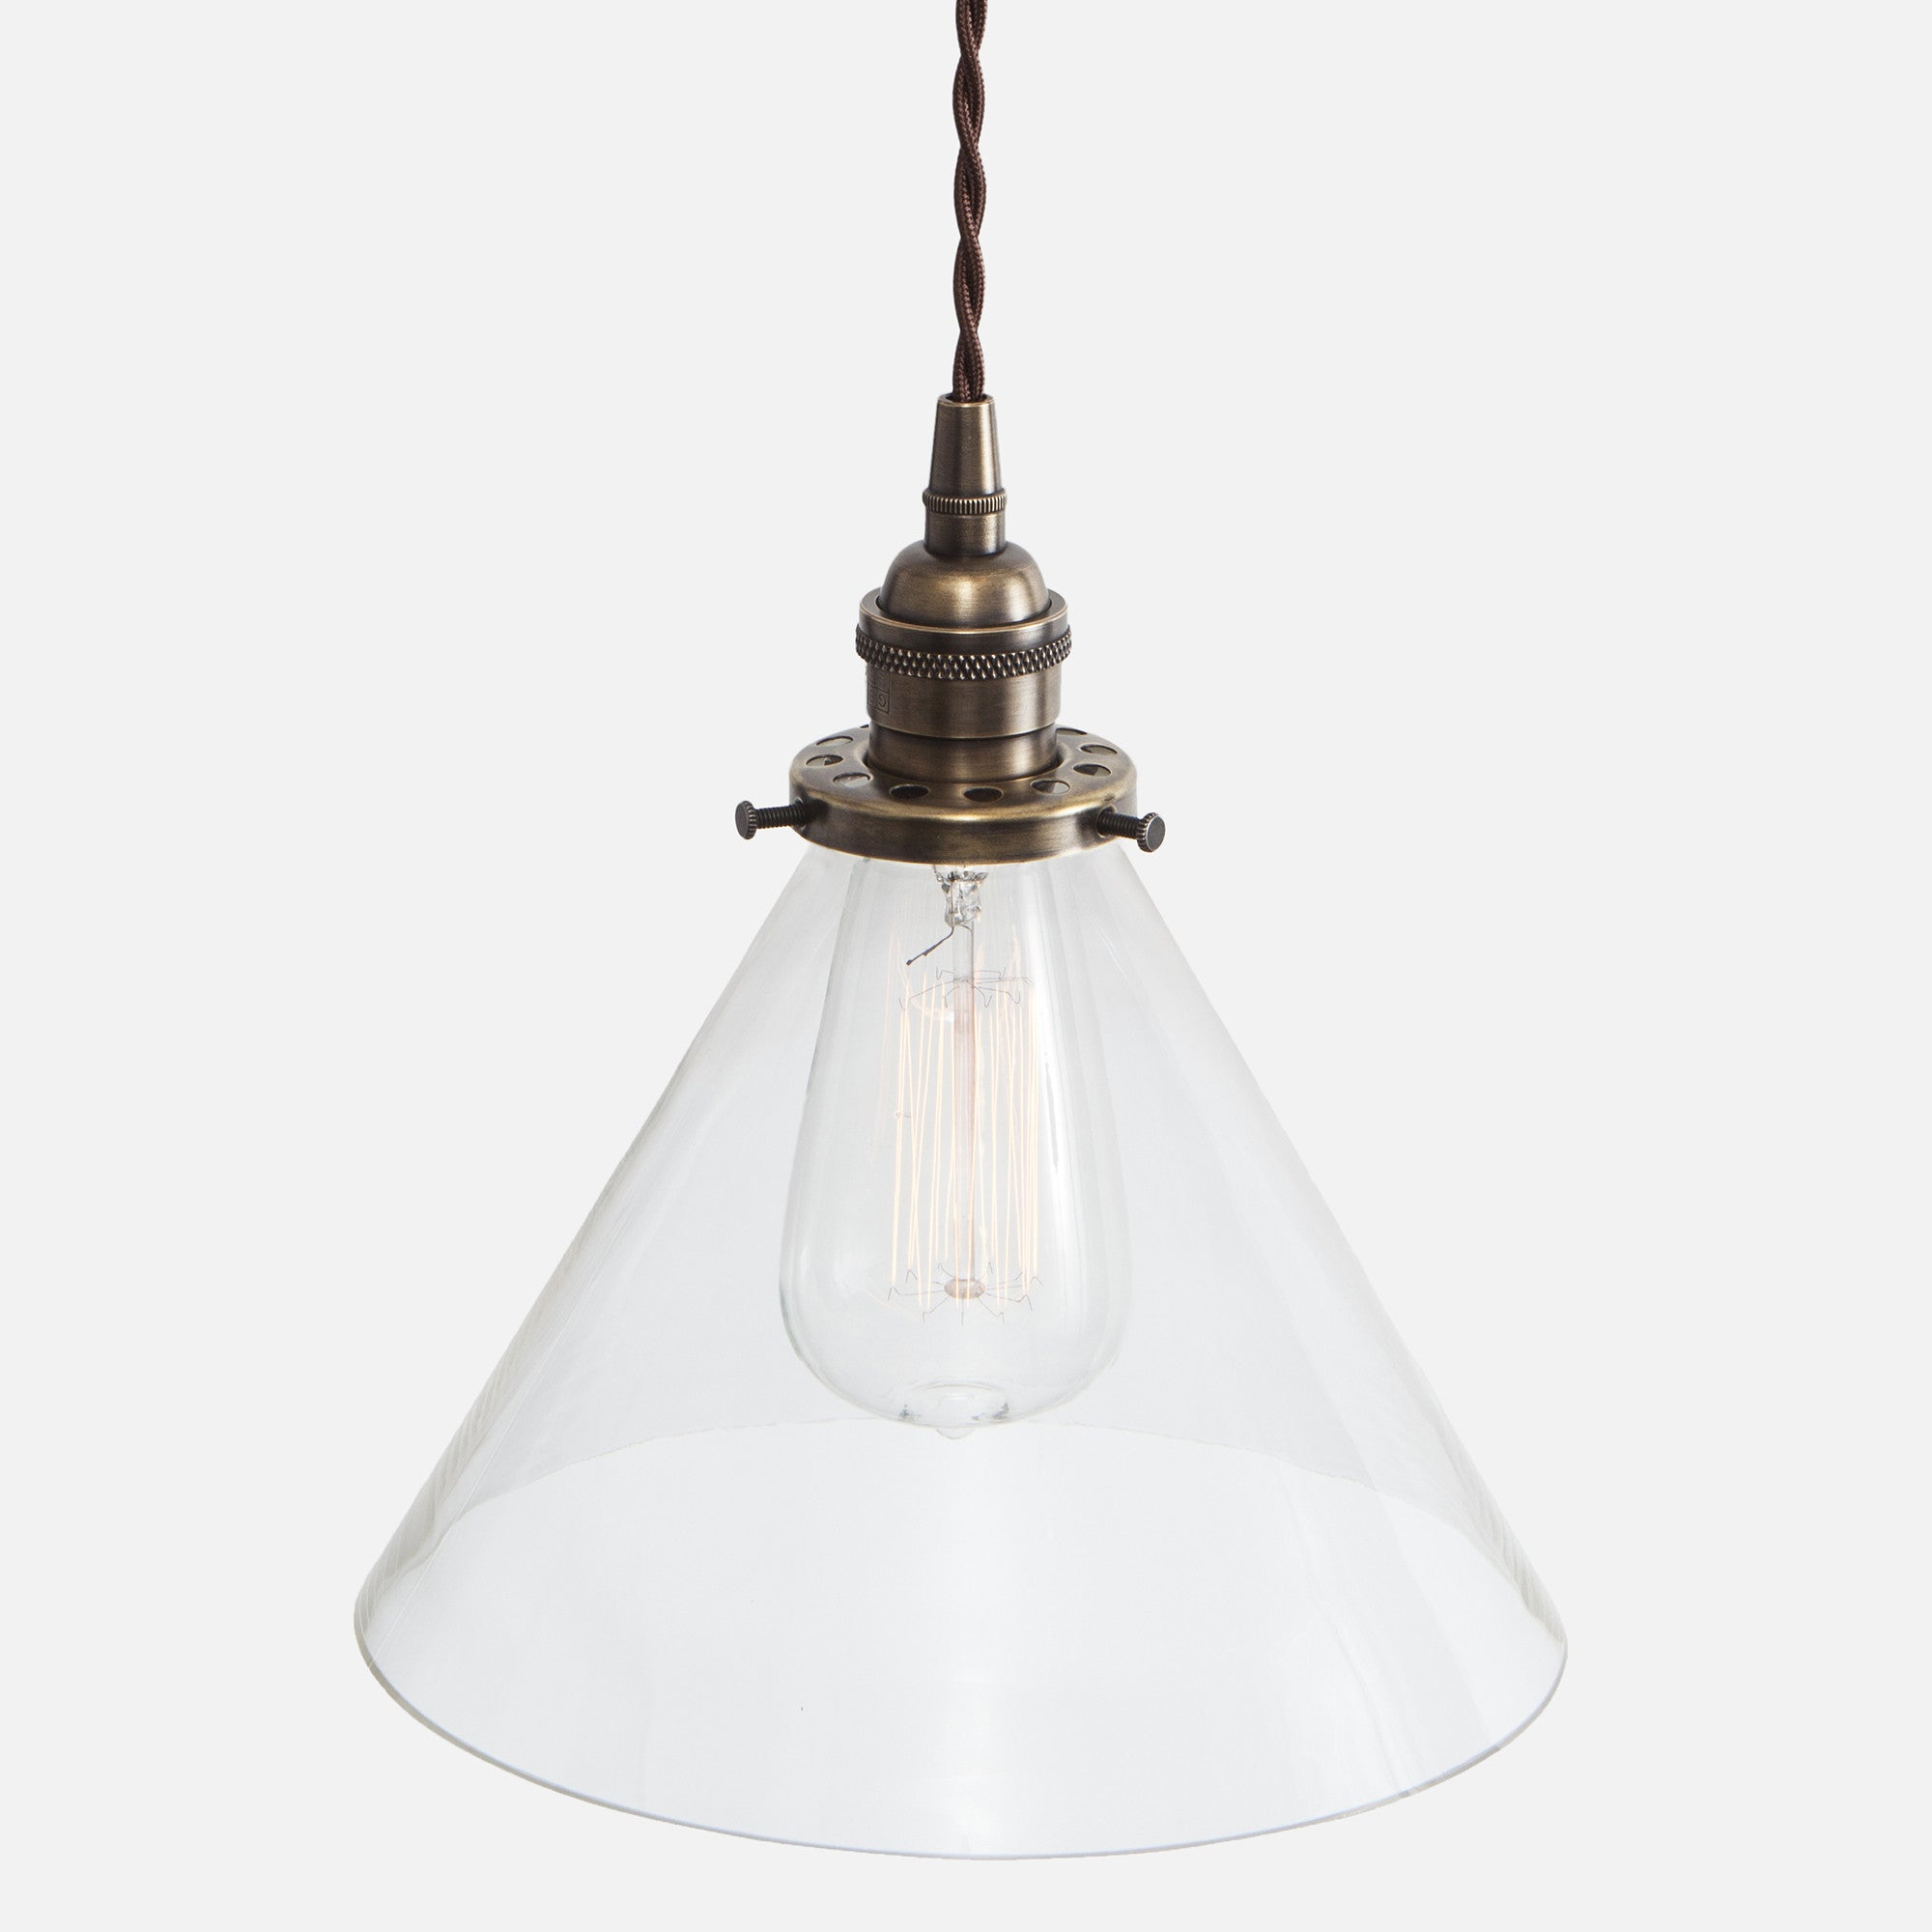 Vintage Classics Pendant Lighting Collection